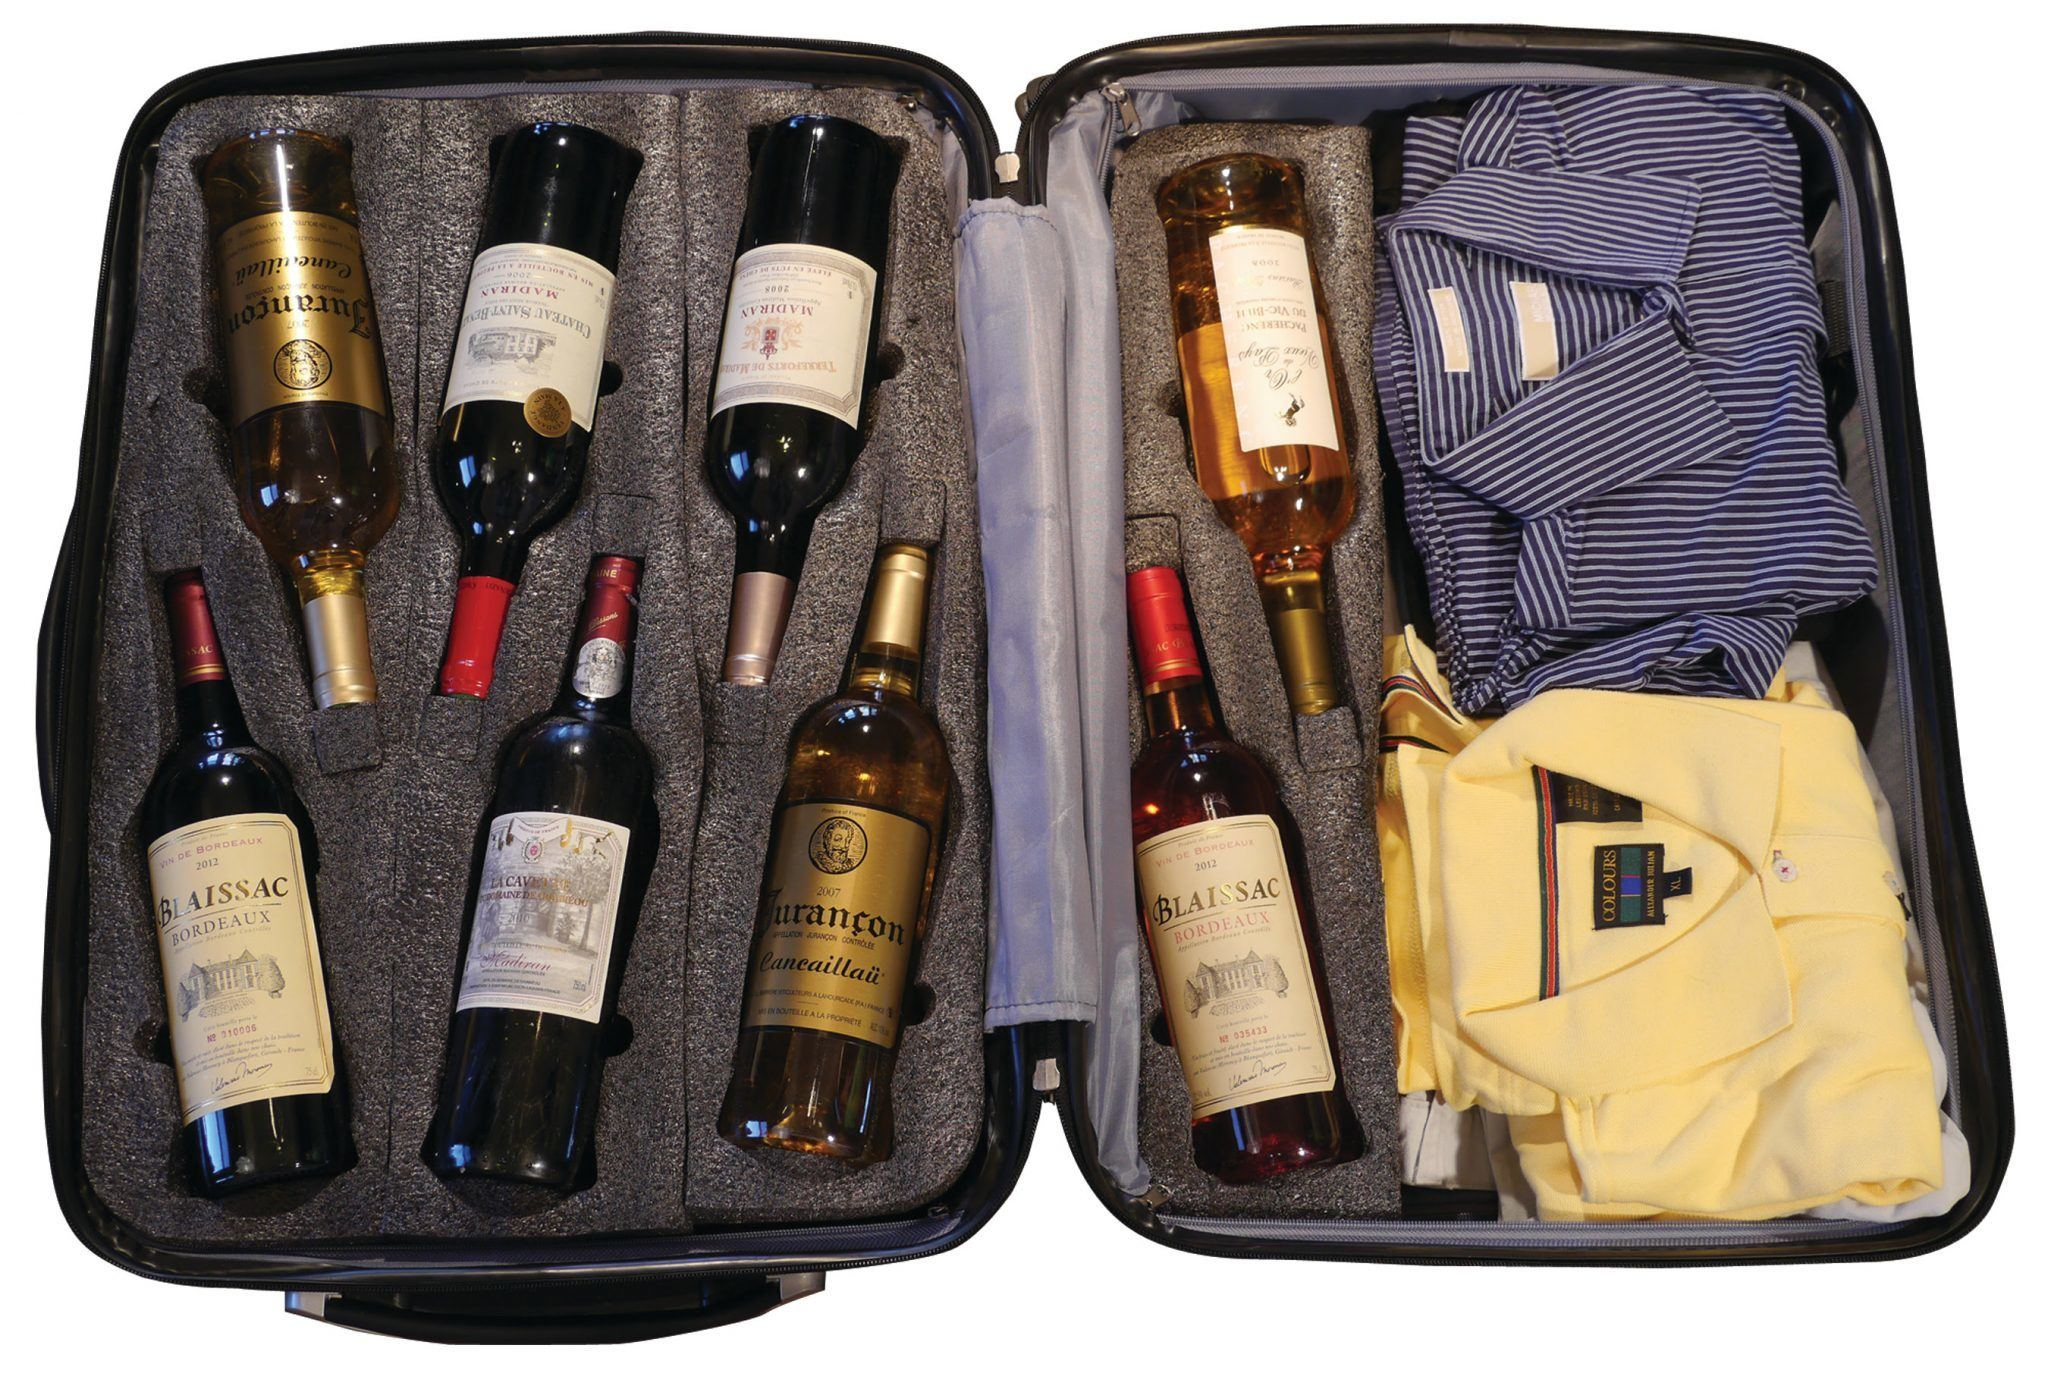 vinegarde valise perfect wine luggage for wine travels. Black Bedroom Furniture Sets. Home Design Ideas